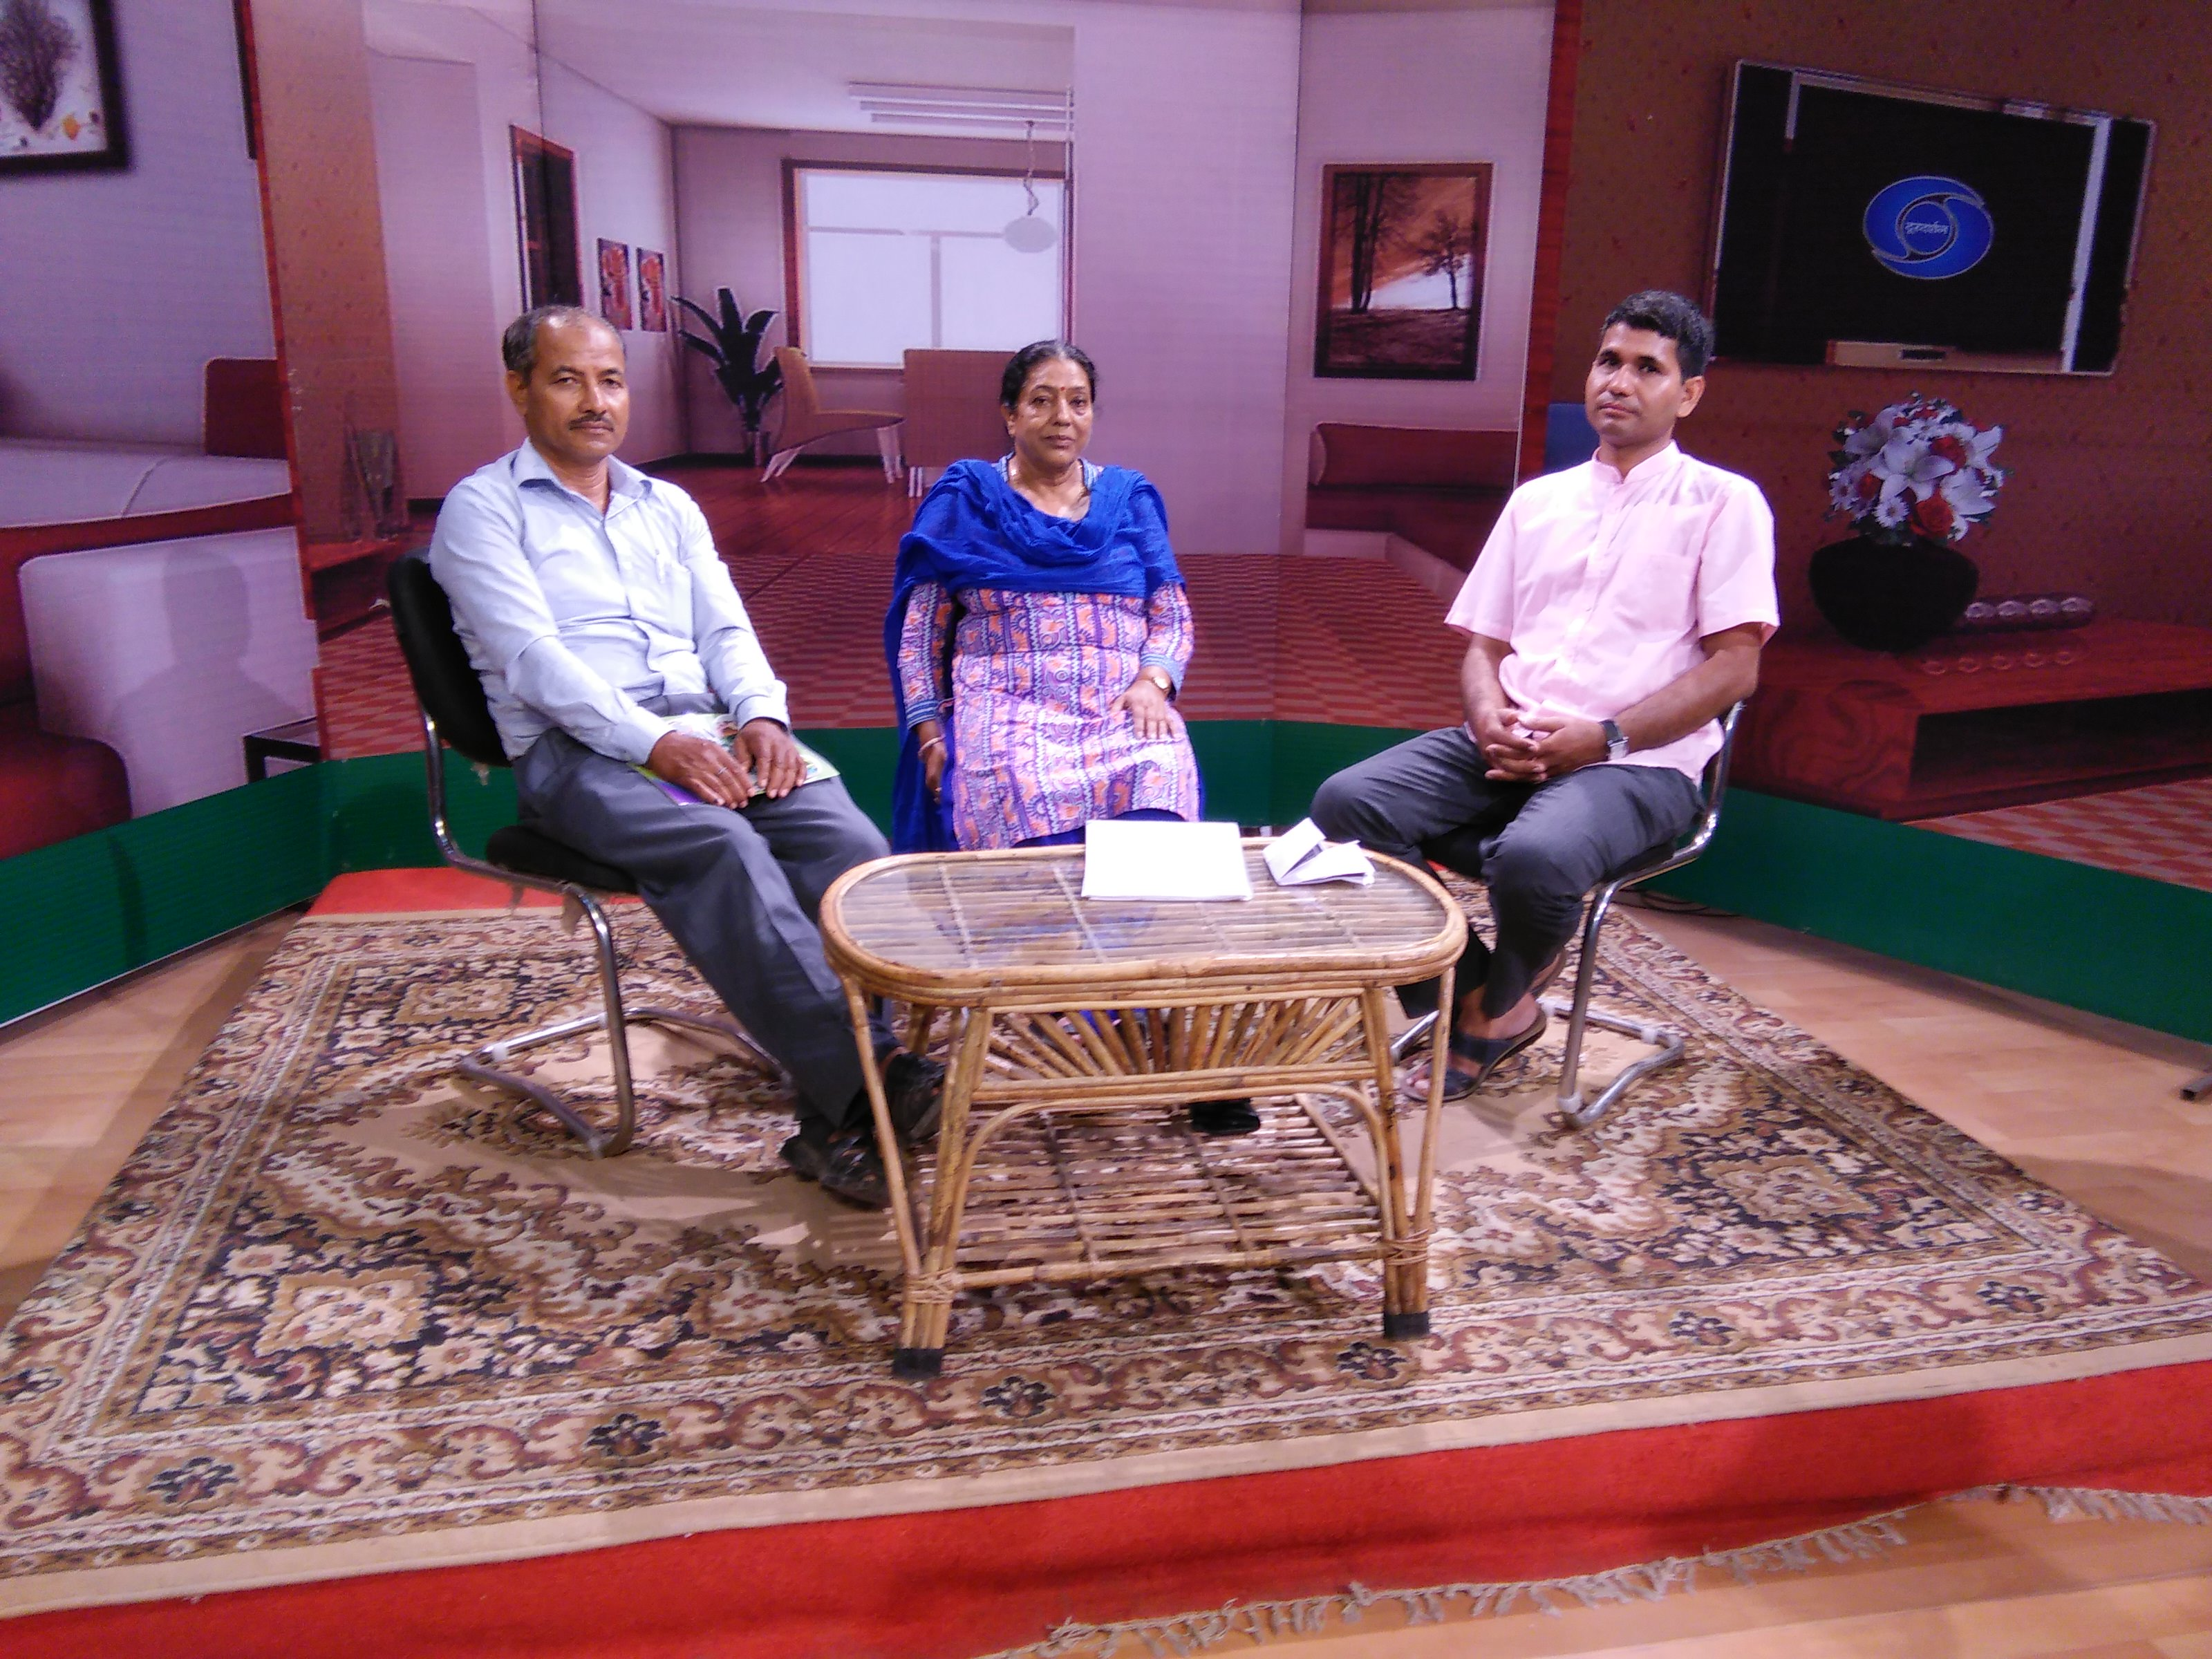 Praveen Kumar Bhatt in Doordarshan studio during a talk show.